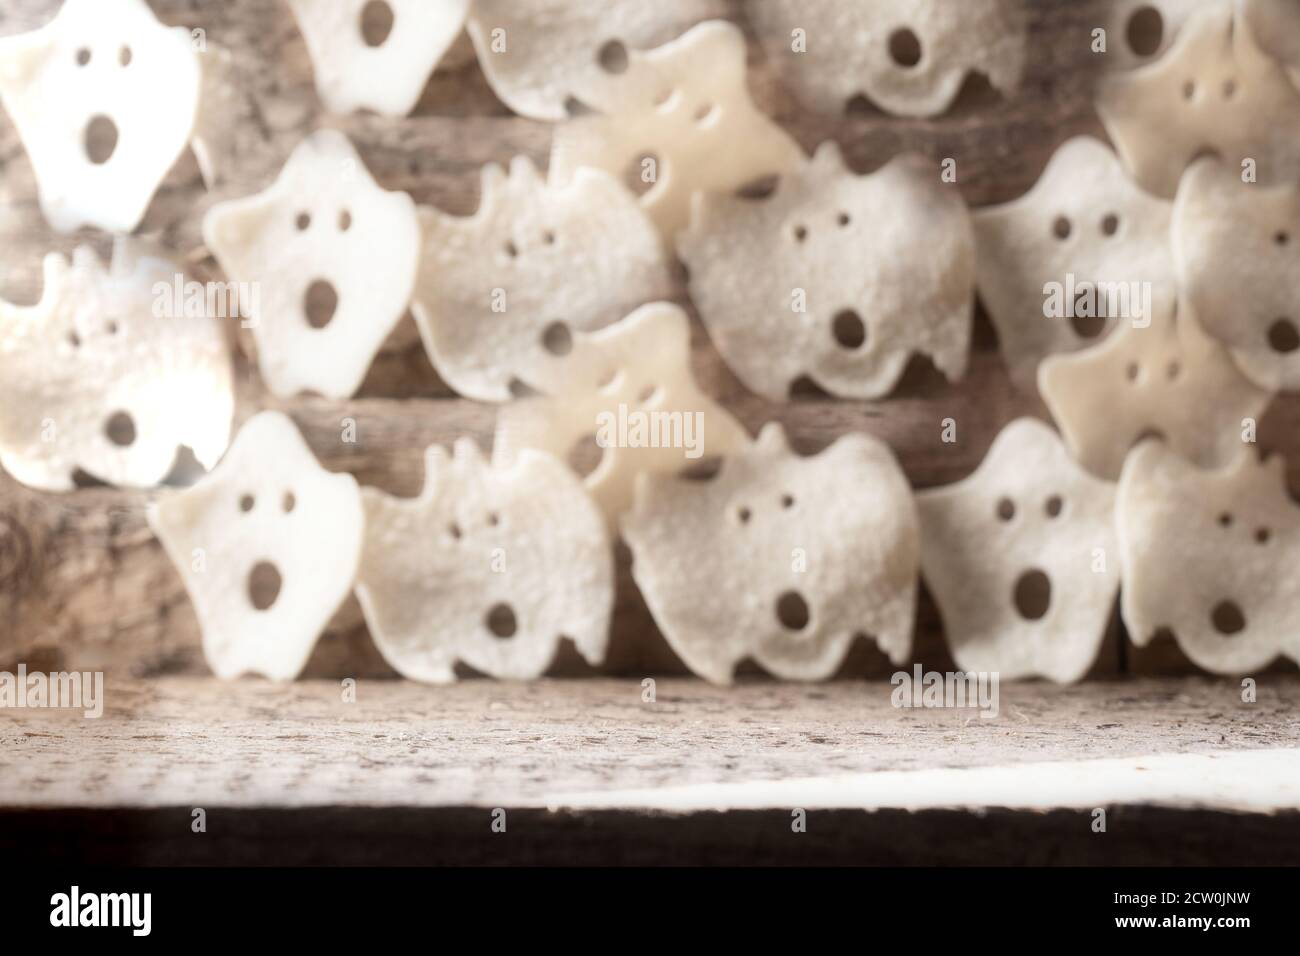 Group of various scary ghost, Halloween background modern wooden design, october horror style Stock Photo